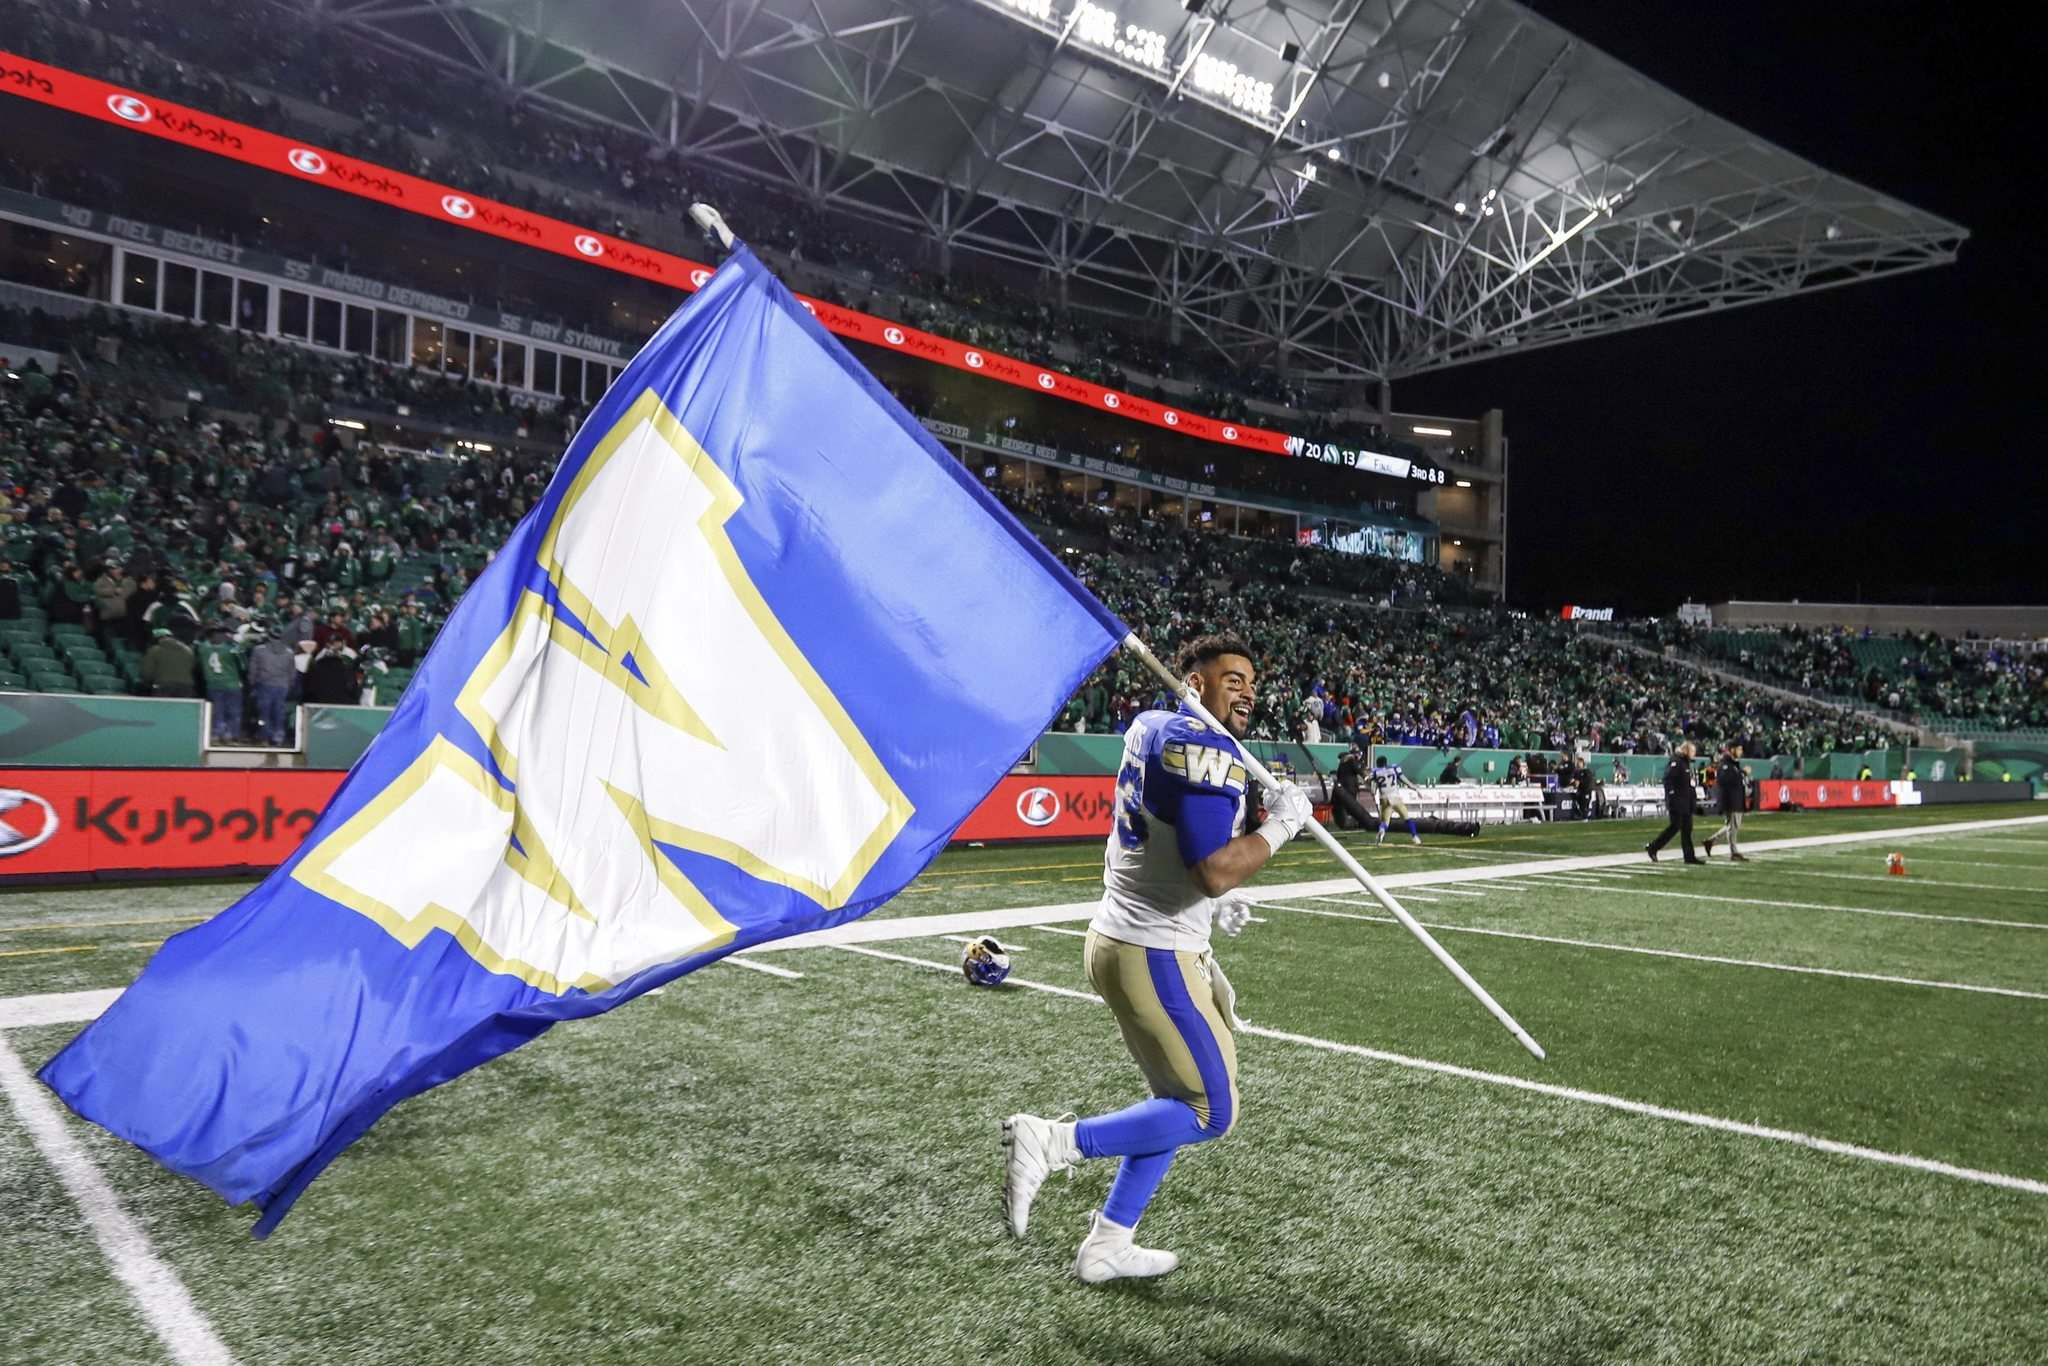 JEFF MCINTOSH / THE CANADIAN PRESS</p><p>Winnipeg Blue Bombers' Andrew Harris carries a team flag after defeating the Saskatchewan Roughriders in the CFL West Division final in Regina, Sunday.</p>